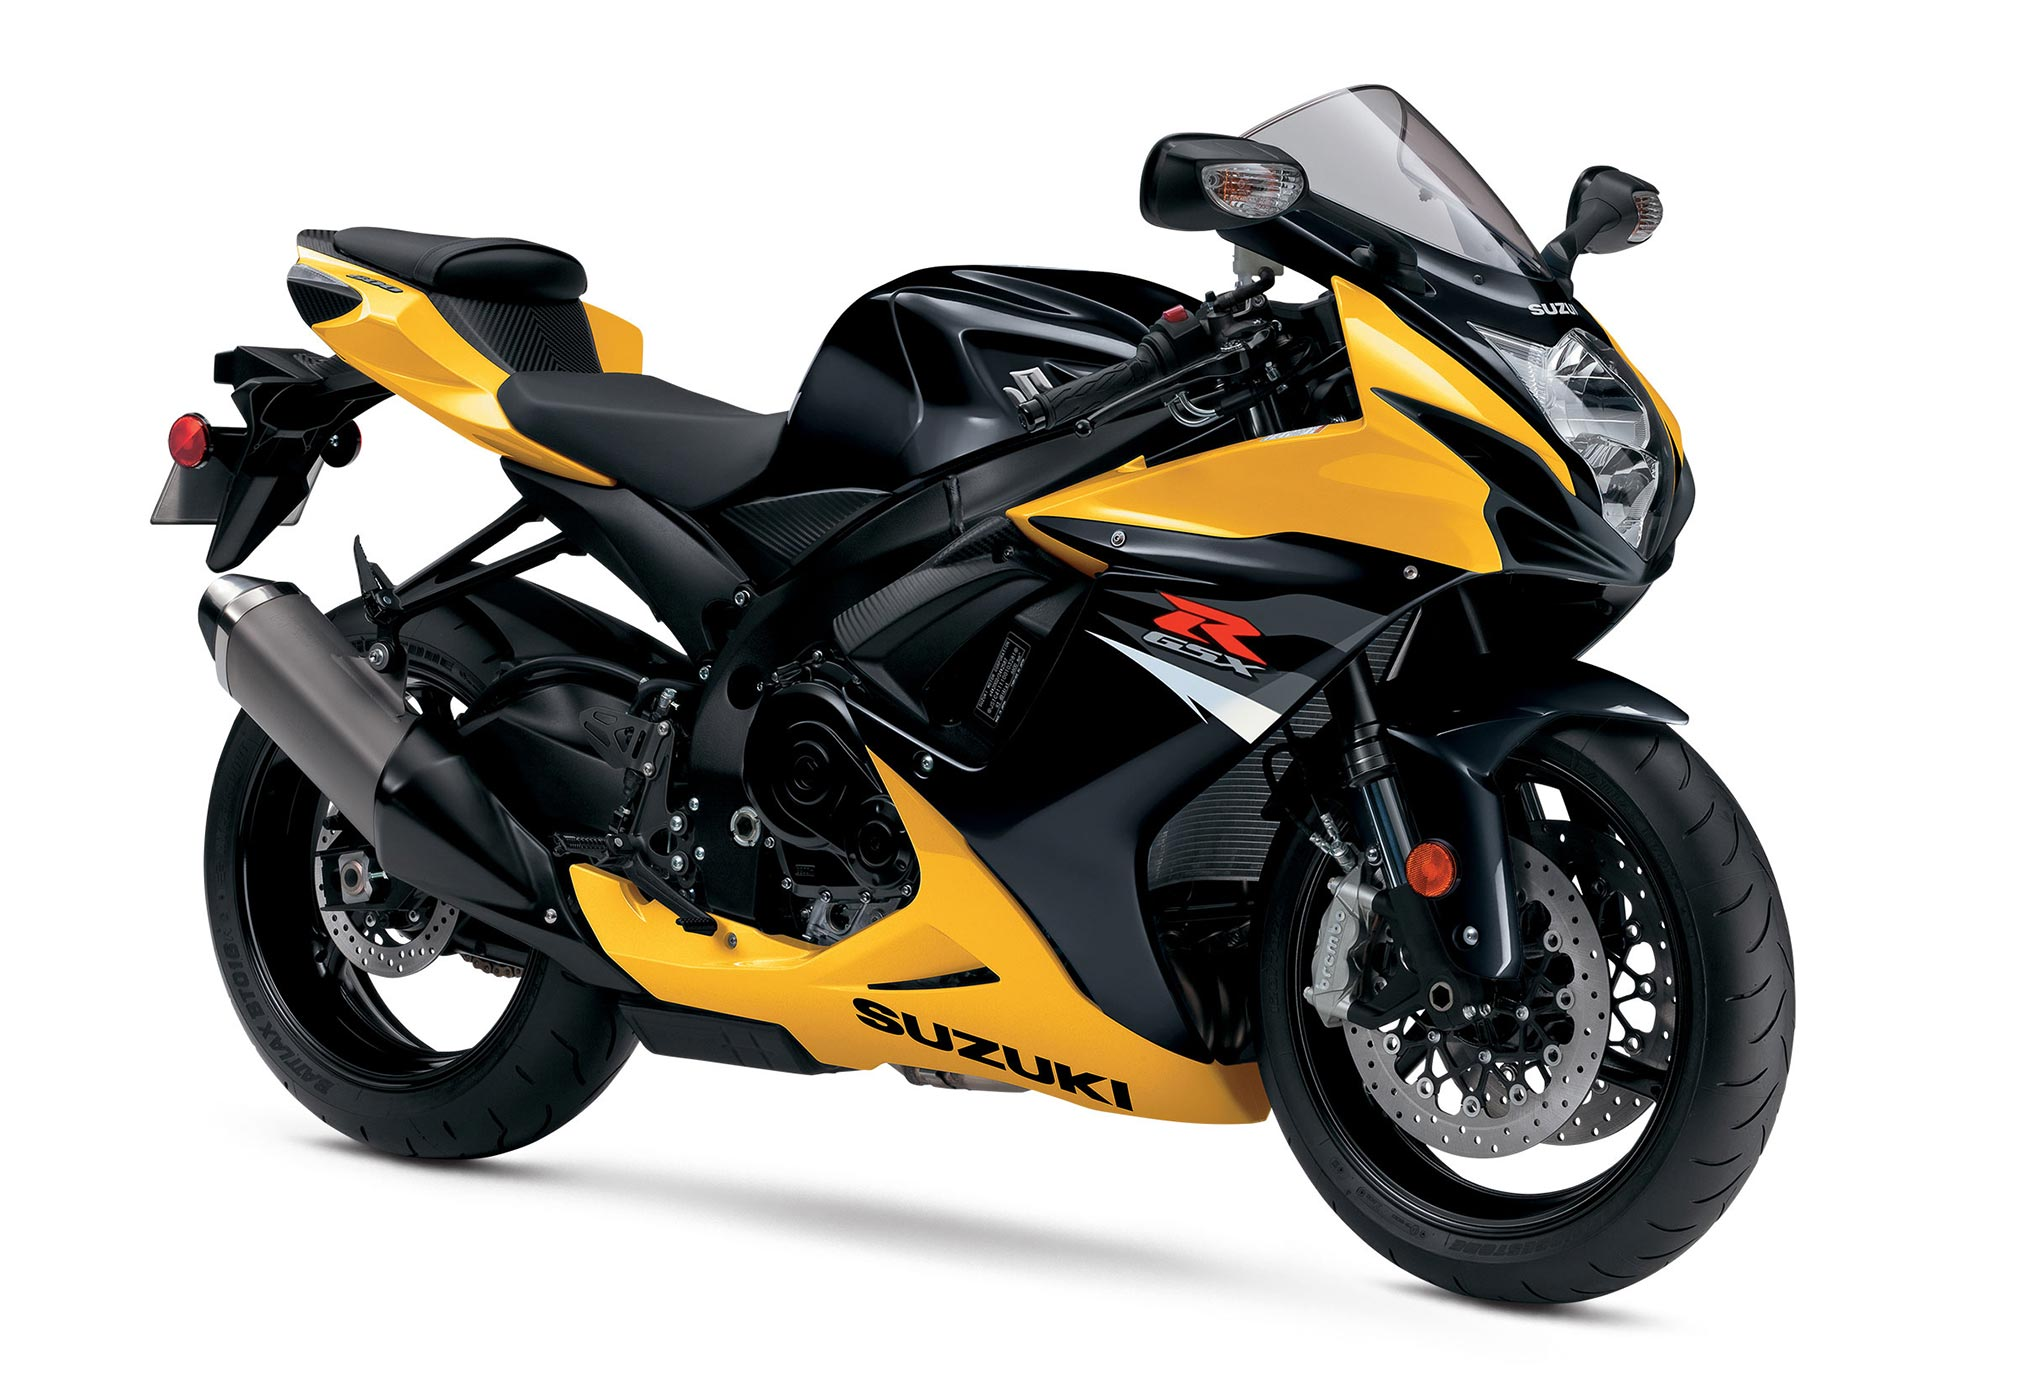 Suzuki gsx-r photo - 2